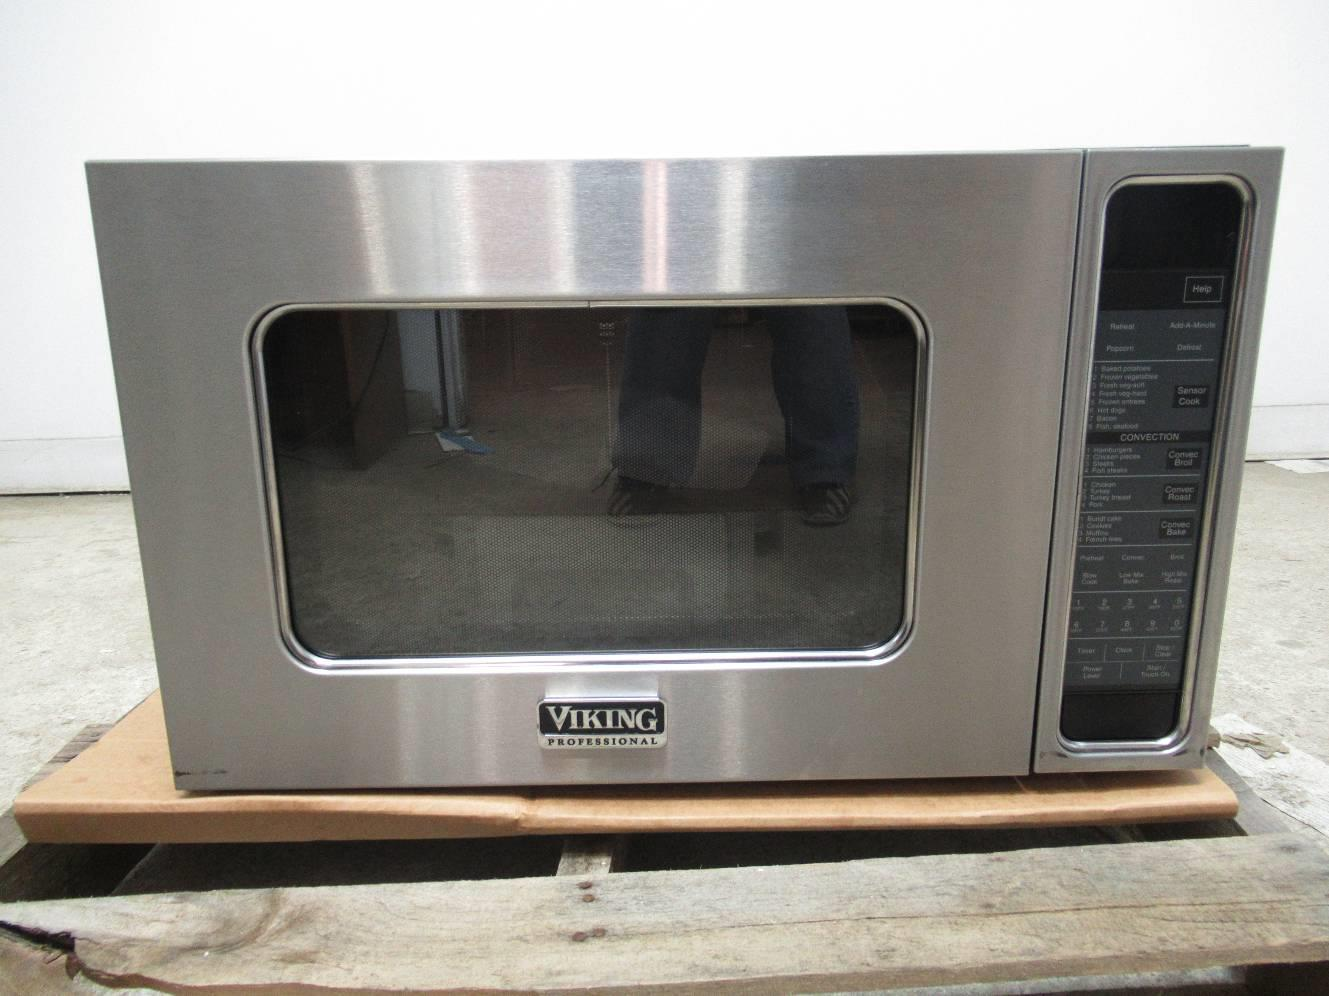 oven full noteworthy viking toaste breville toaster size at ph delightful walmart awesome gratifying sunroom hypnotizing sale superb toasters of for unforeseen on